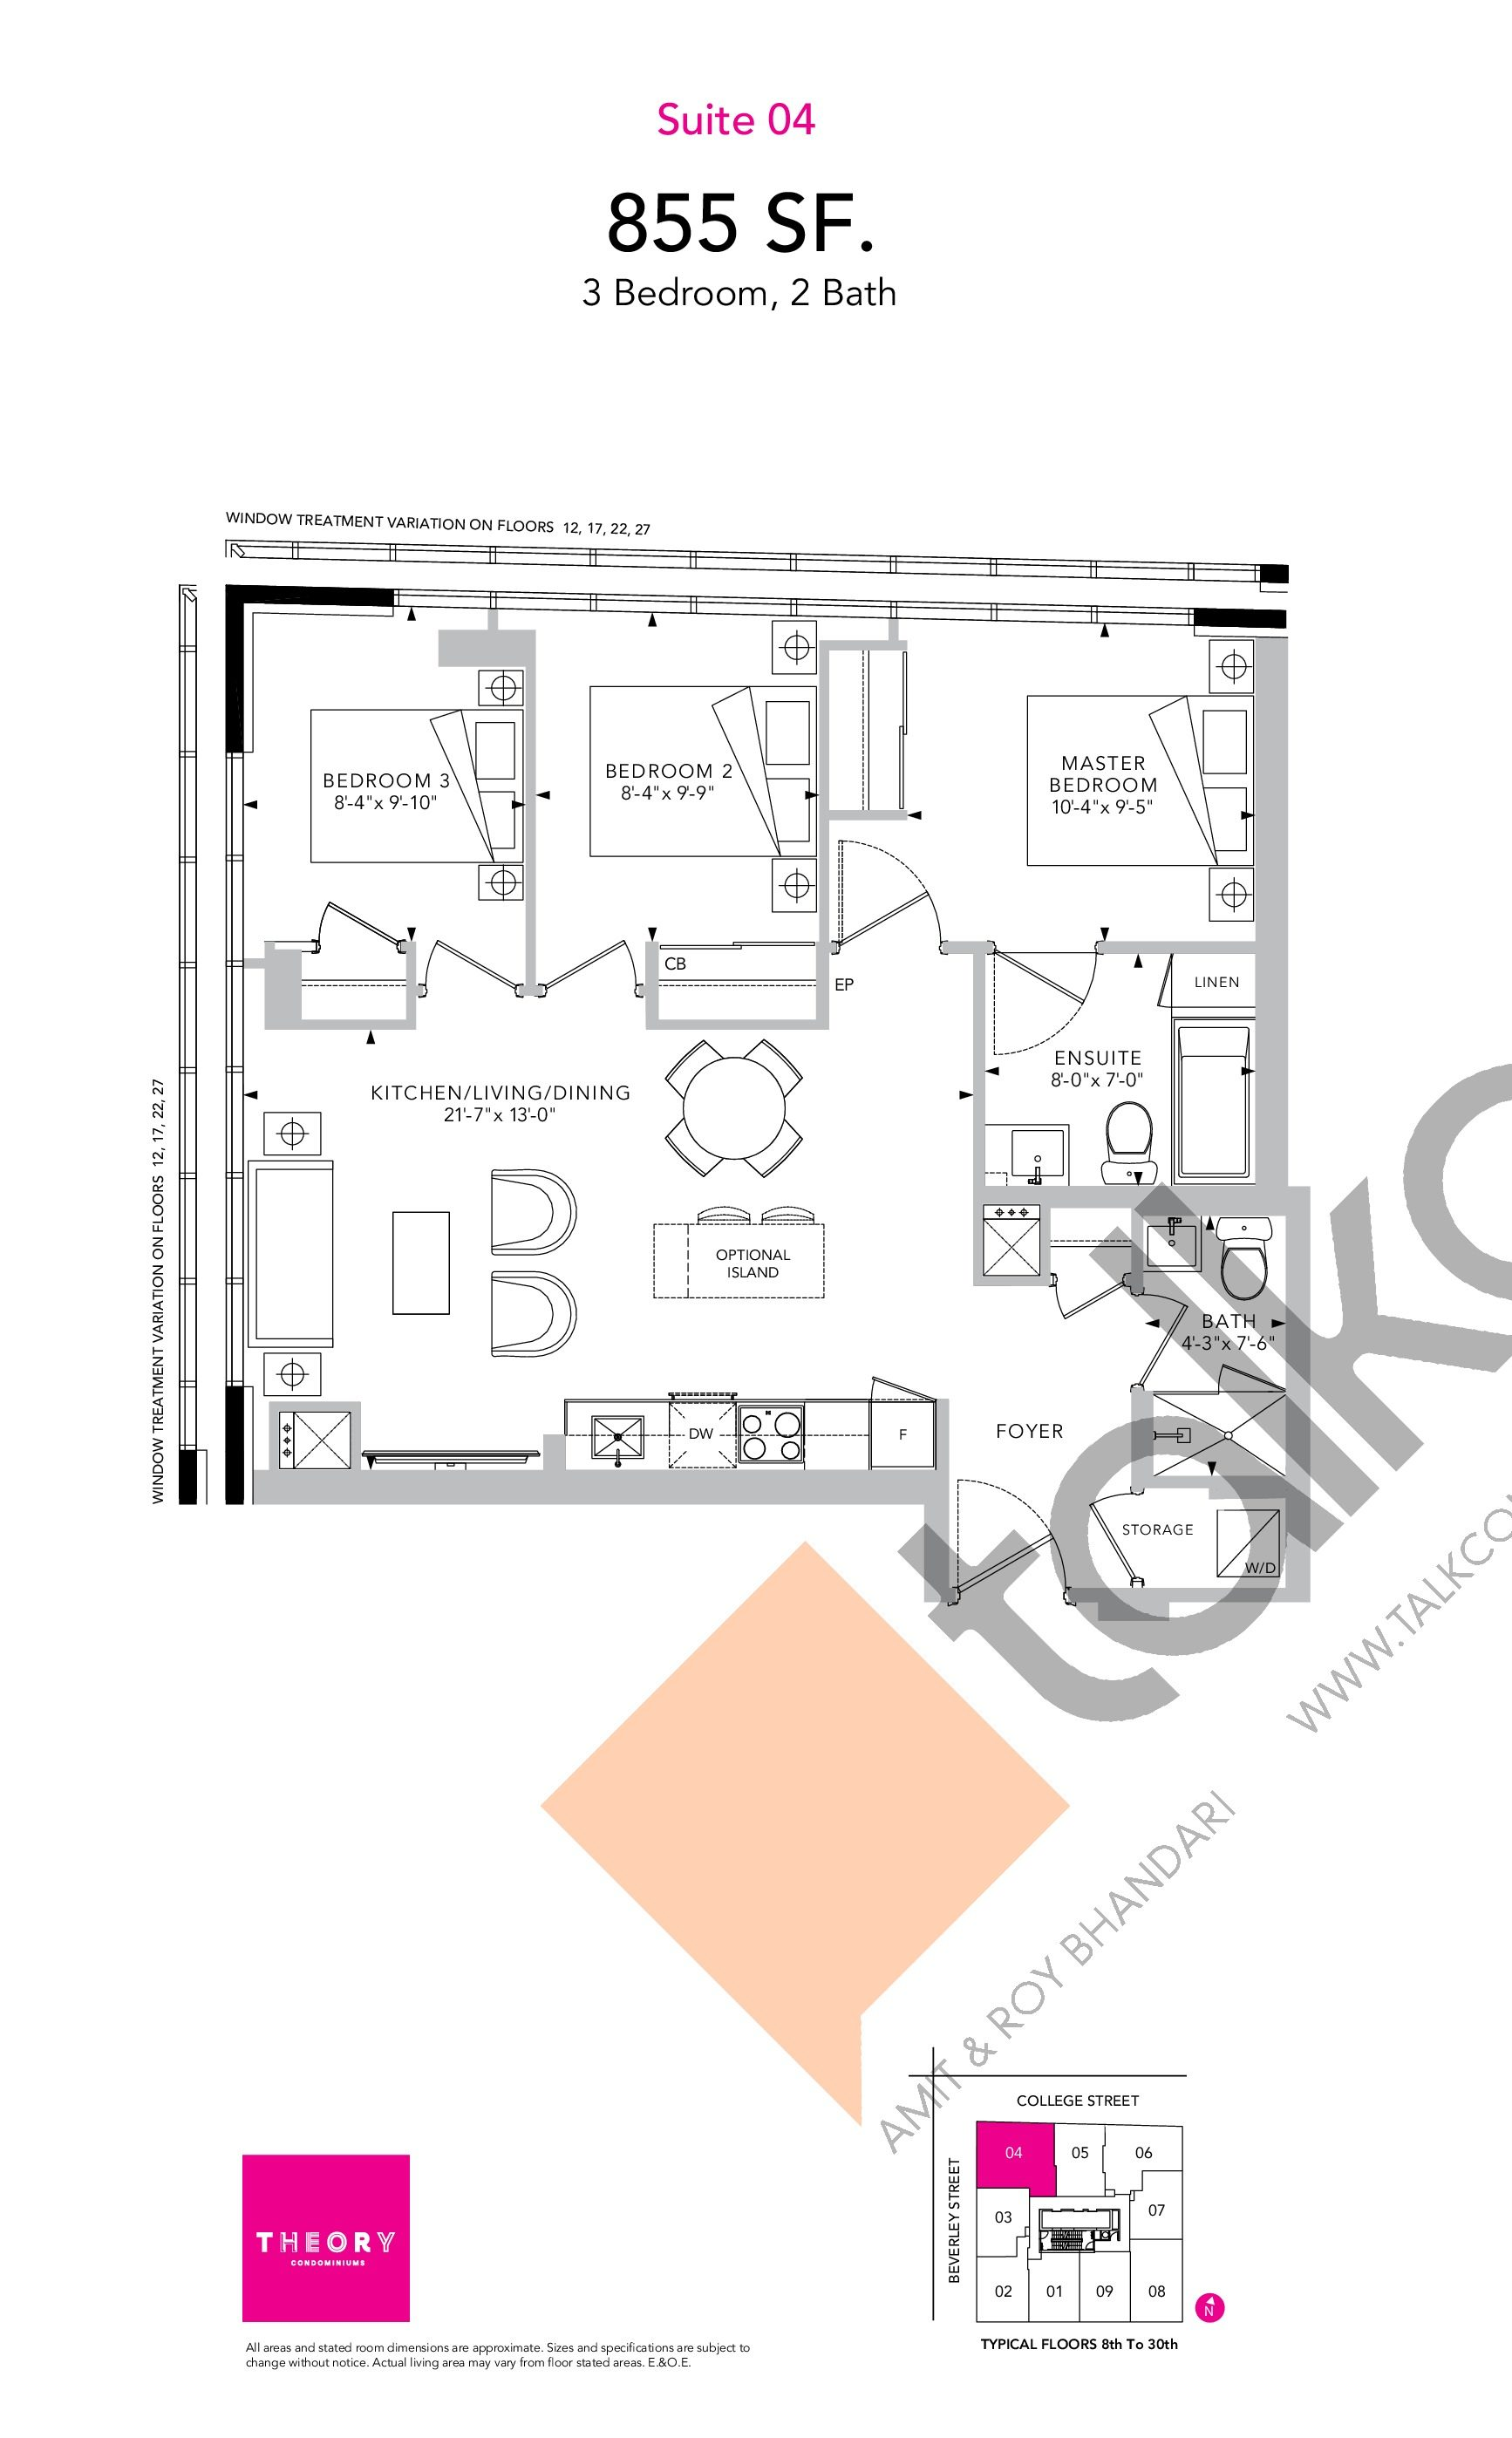 Suite 04 Floor Plan at Theory Condos - 855 sq.ft